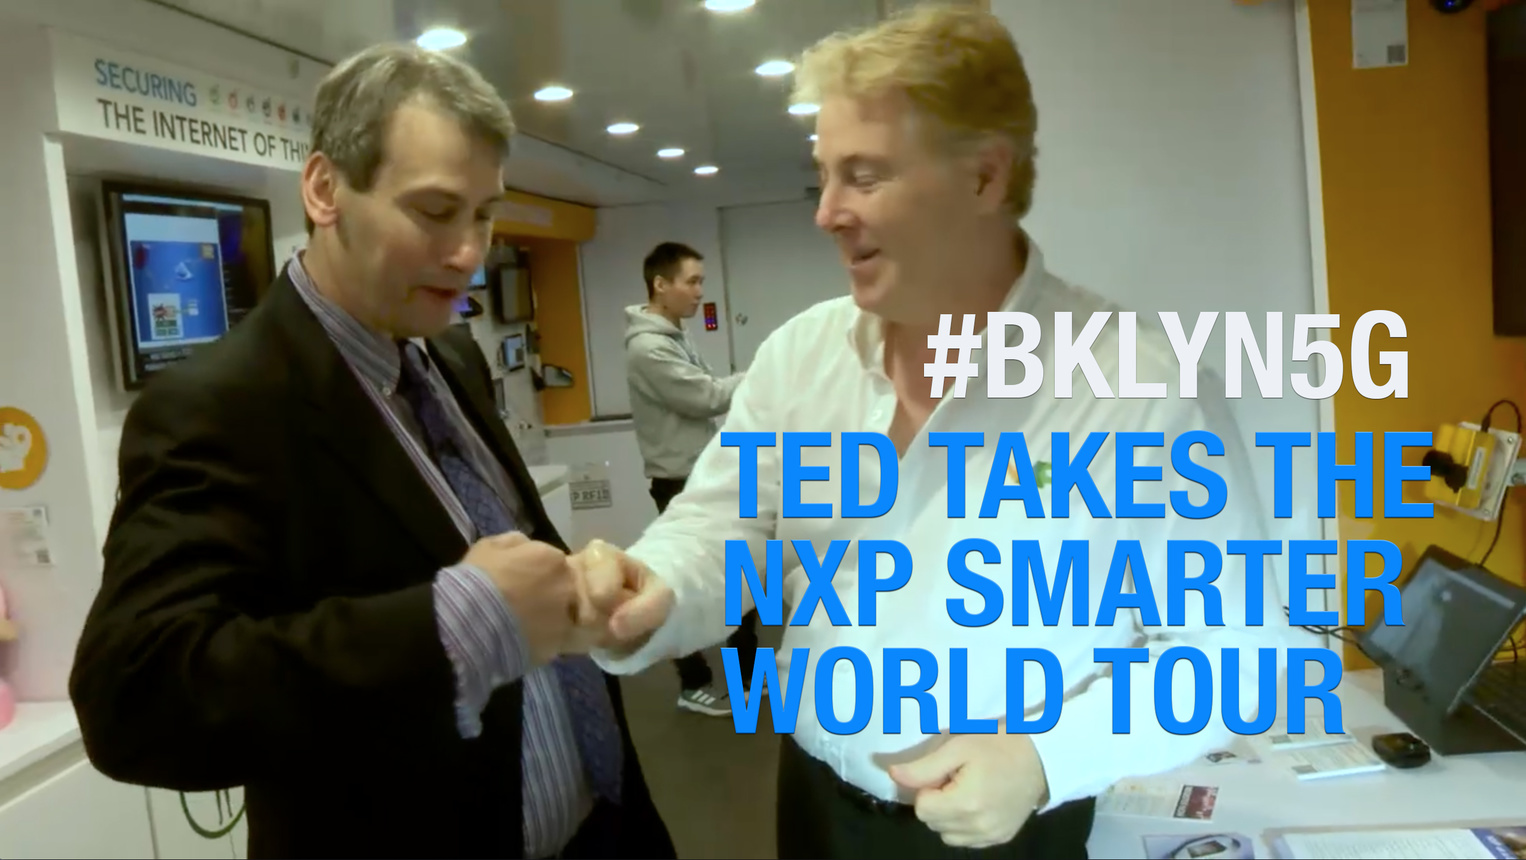 NXP Smarter World Tour Truck with Ted Rappaport: Brooklyn 5G Summit